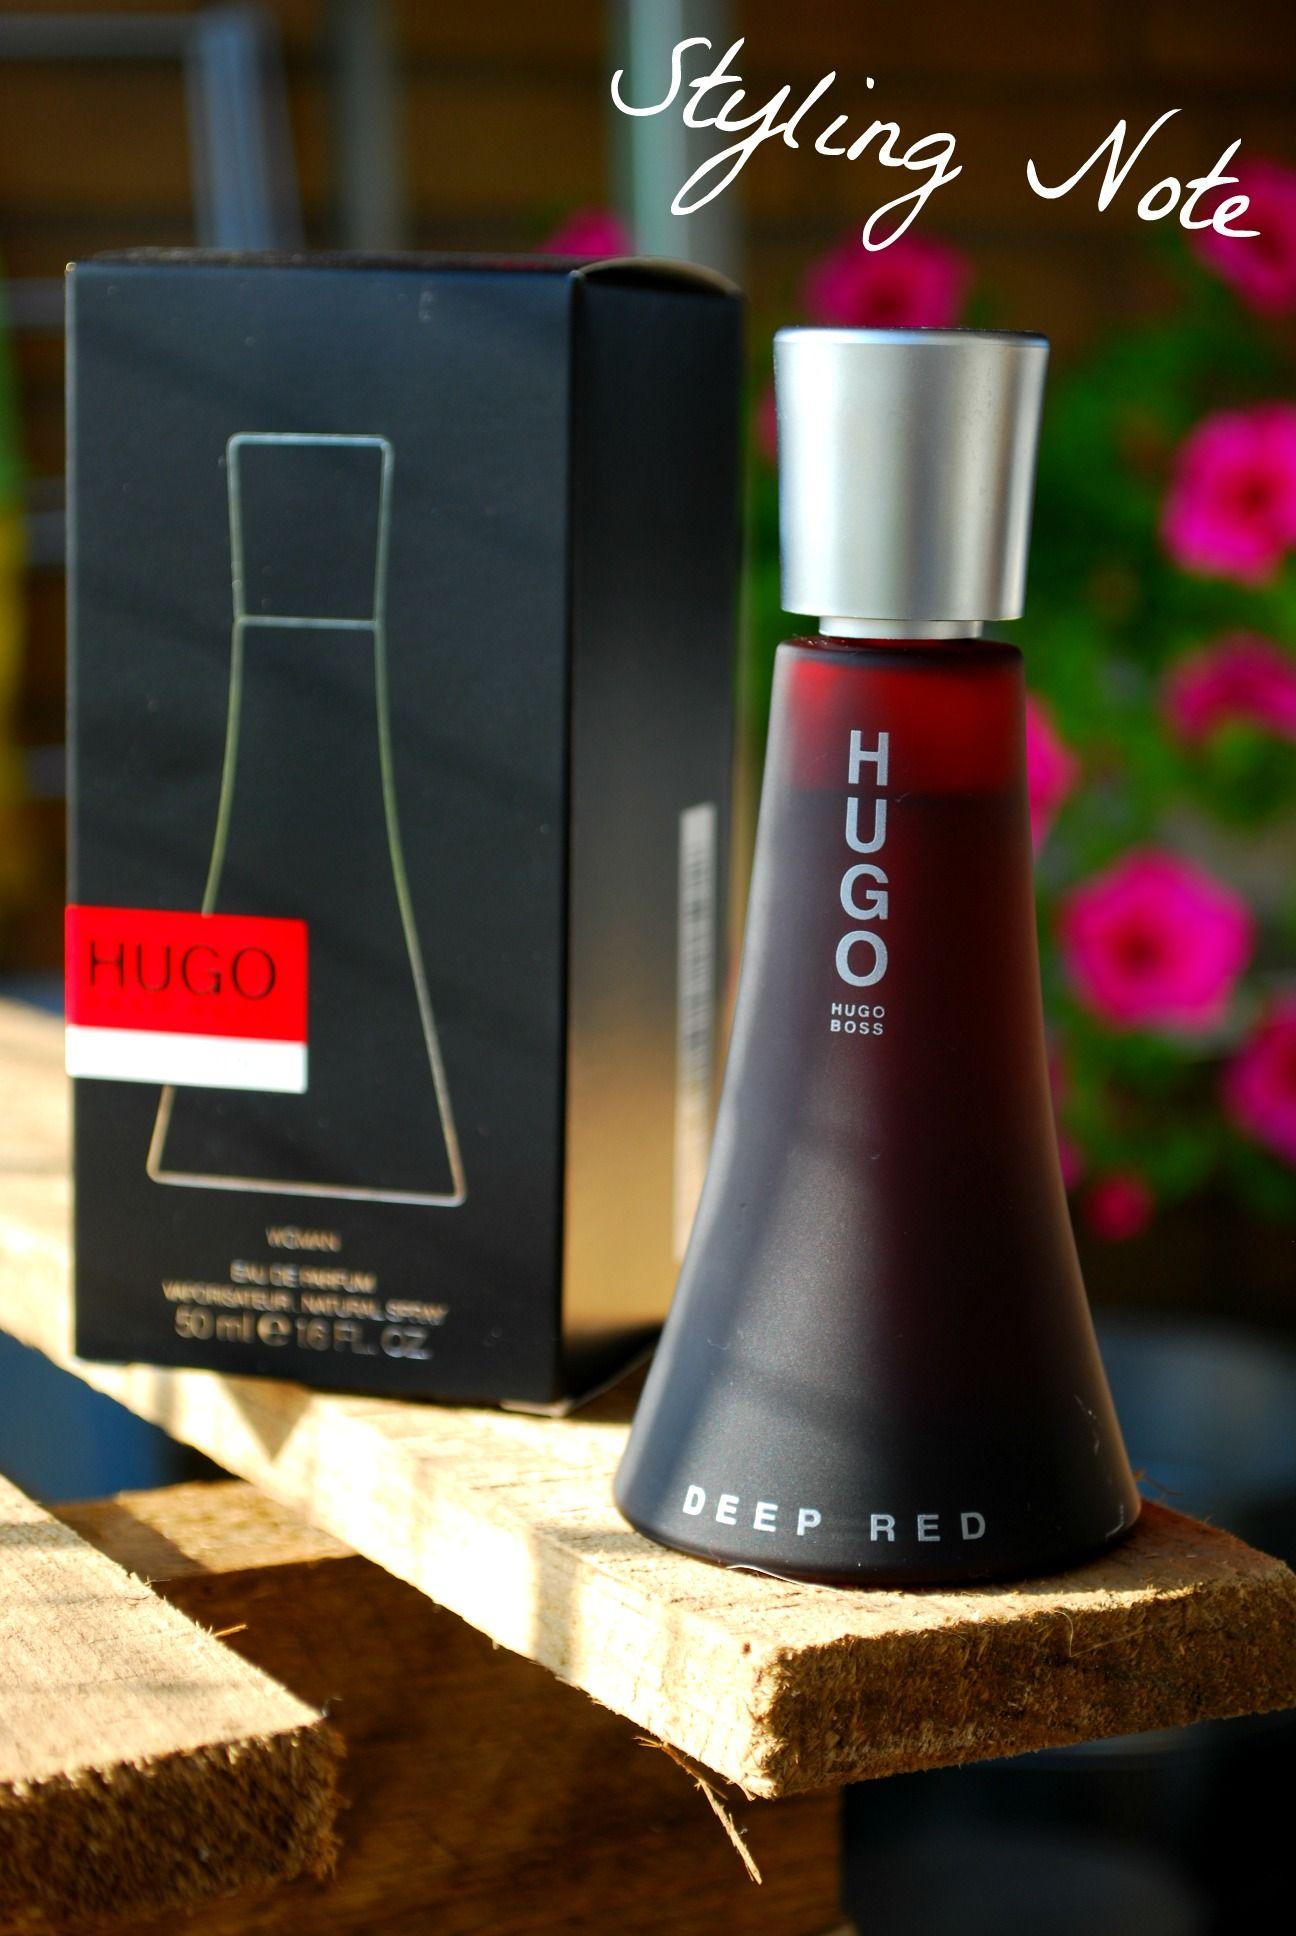 f4b6fdfbe56a Hugo Boss Deep Red. Love this zesty flavorsome Fragrance! So many levels to  enjoy!